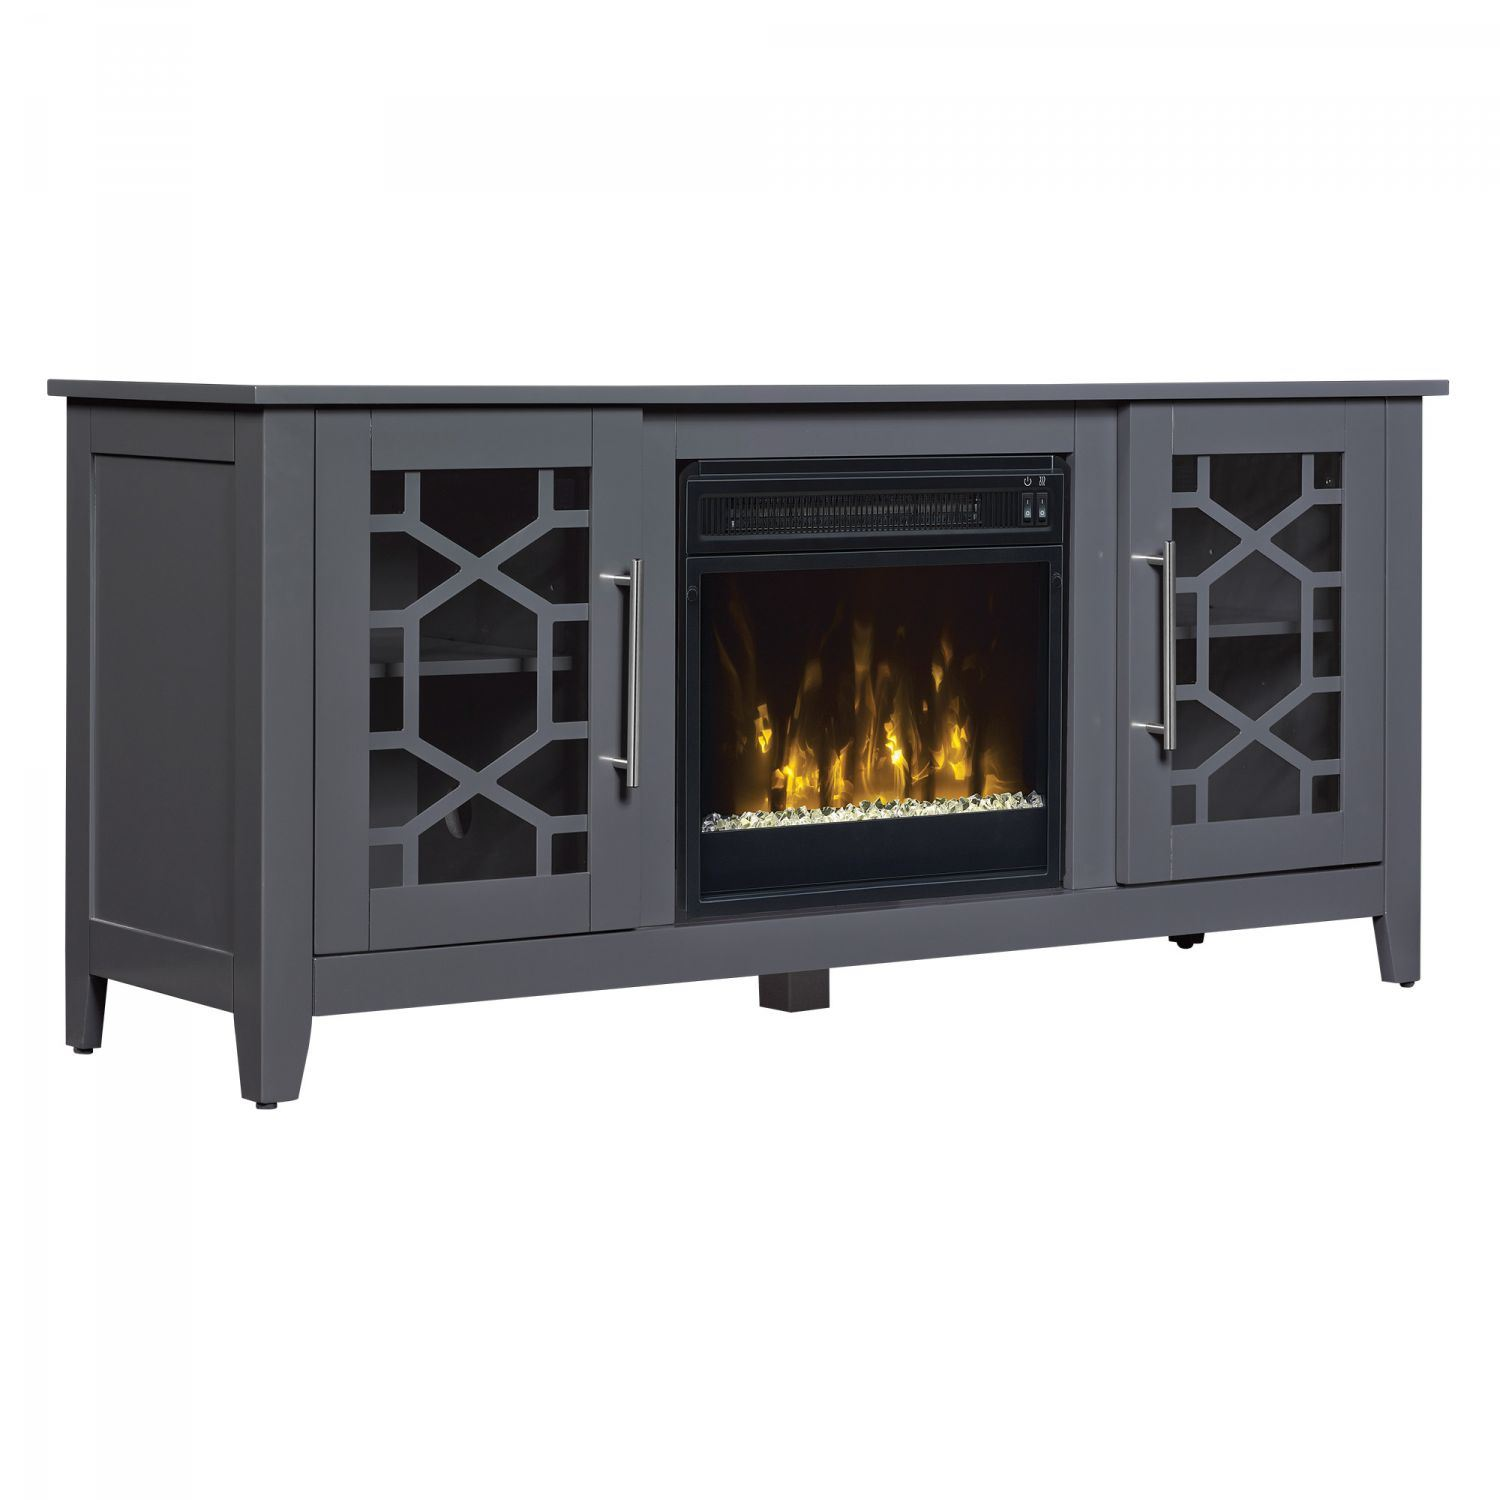 Clarion Tv Stand For Tvs Up To 60 Quot With Fireplace